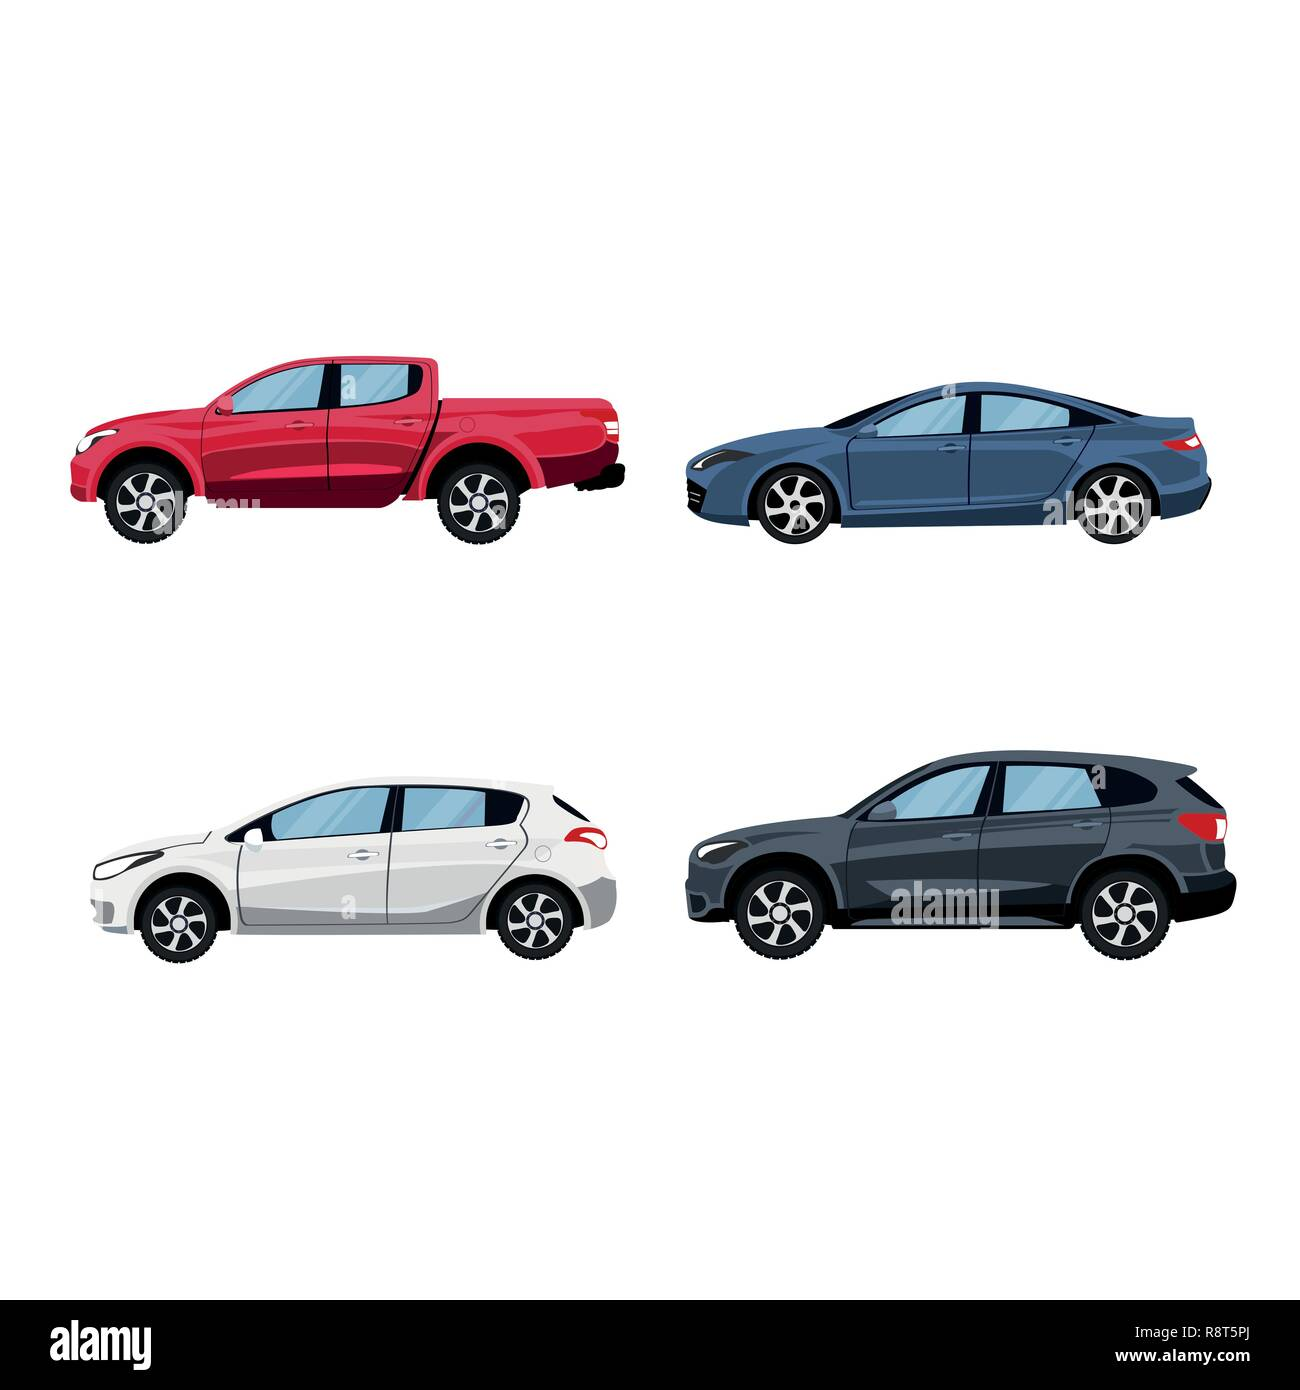 Set of vehicles pickup truck, Hatchback, suv and sedan in side view. - Stock Image